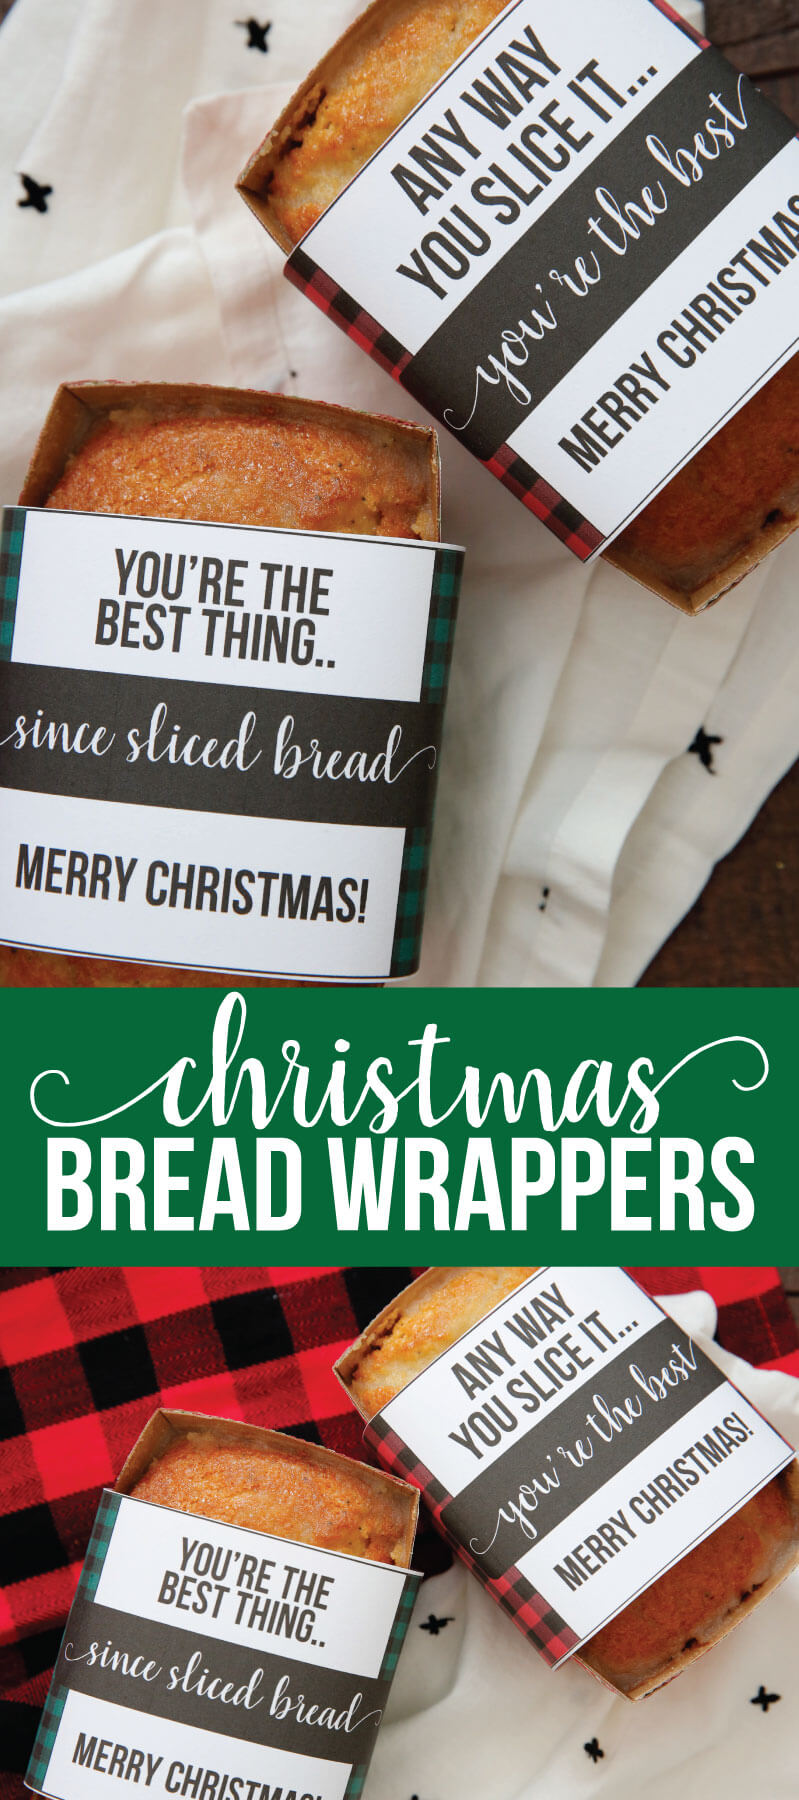 Christmas Bread Wrappers - use these cute printable wrappers to make your bread extra special. www.thirtyhandmadedays.com